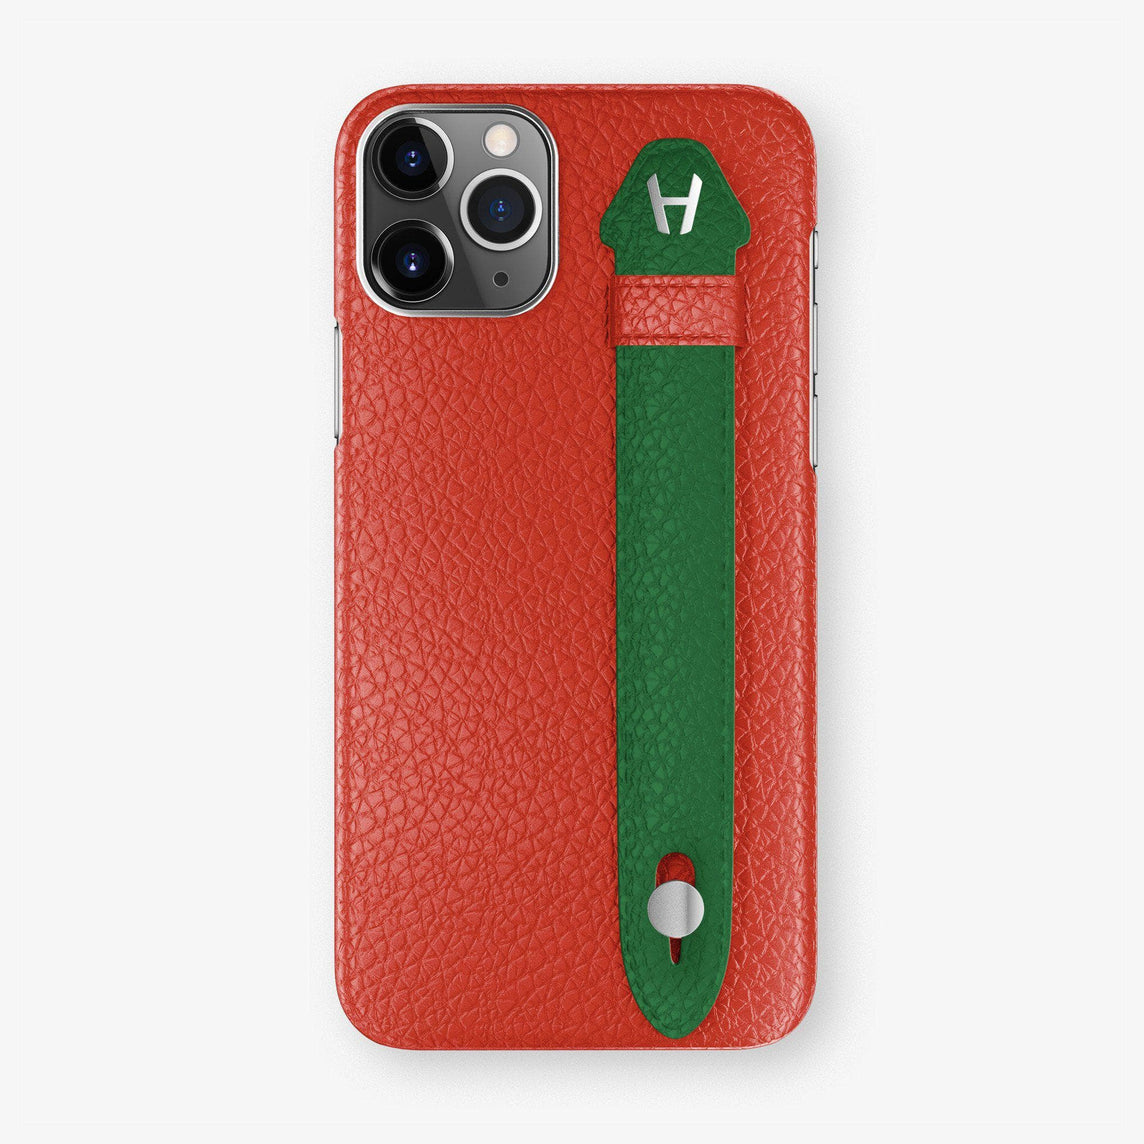 Calfskin Finger Case iPhone 11 Pro Max | Red/Green - Stainless Steel